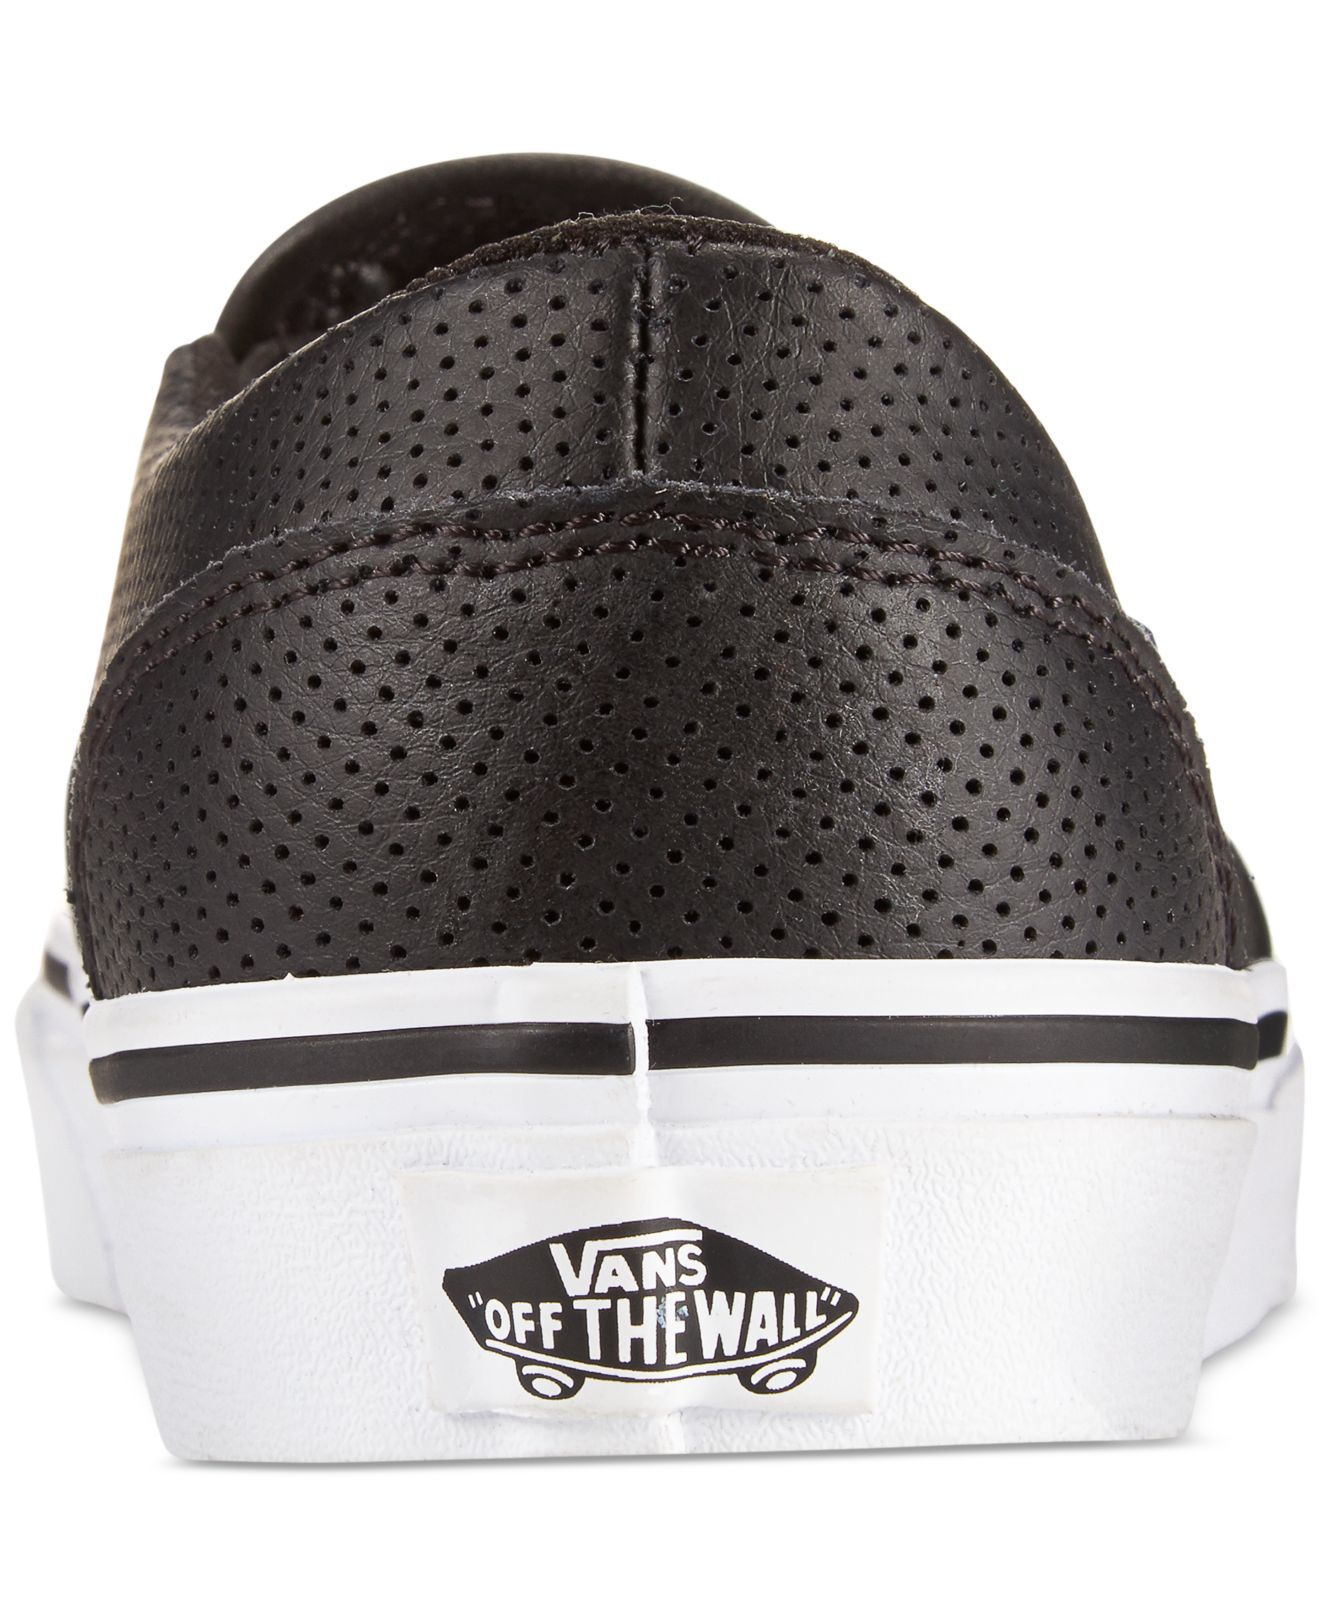 vans classic slip on black perforated leather women's